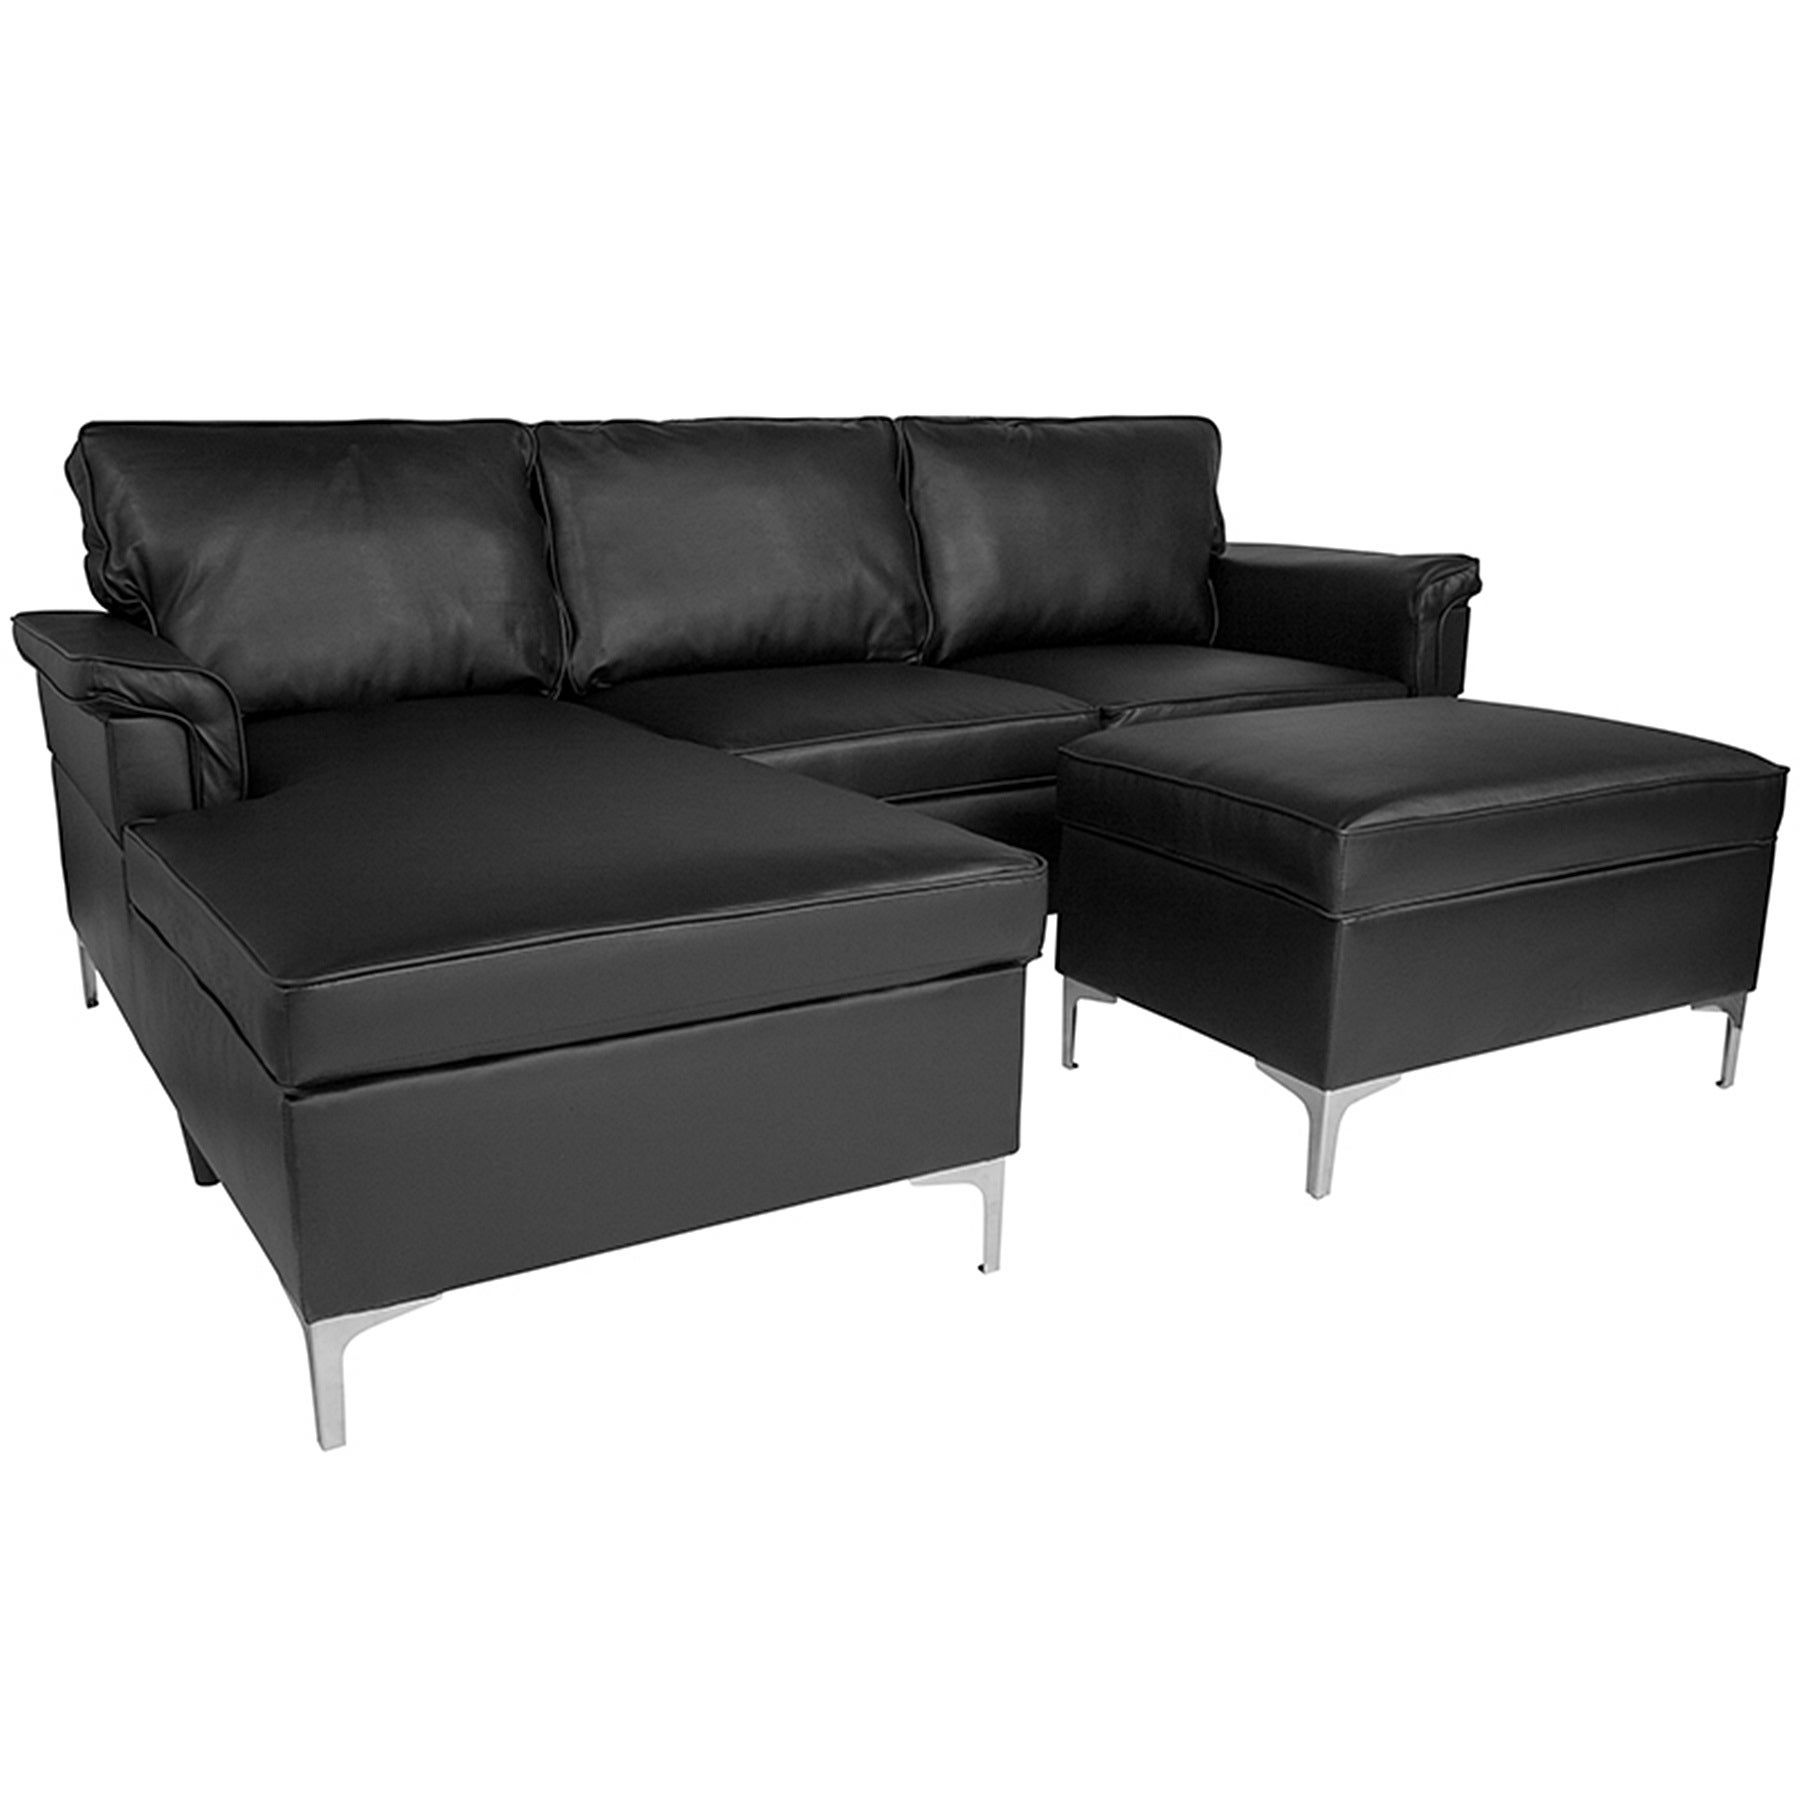 Details about Roseland 3-Piece Black Leather Sectional Sofa with Left Black